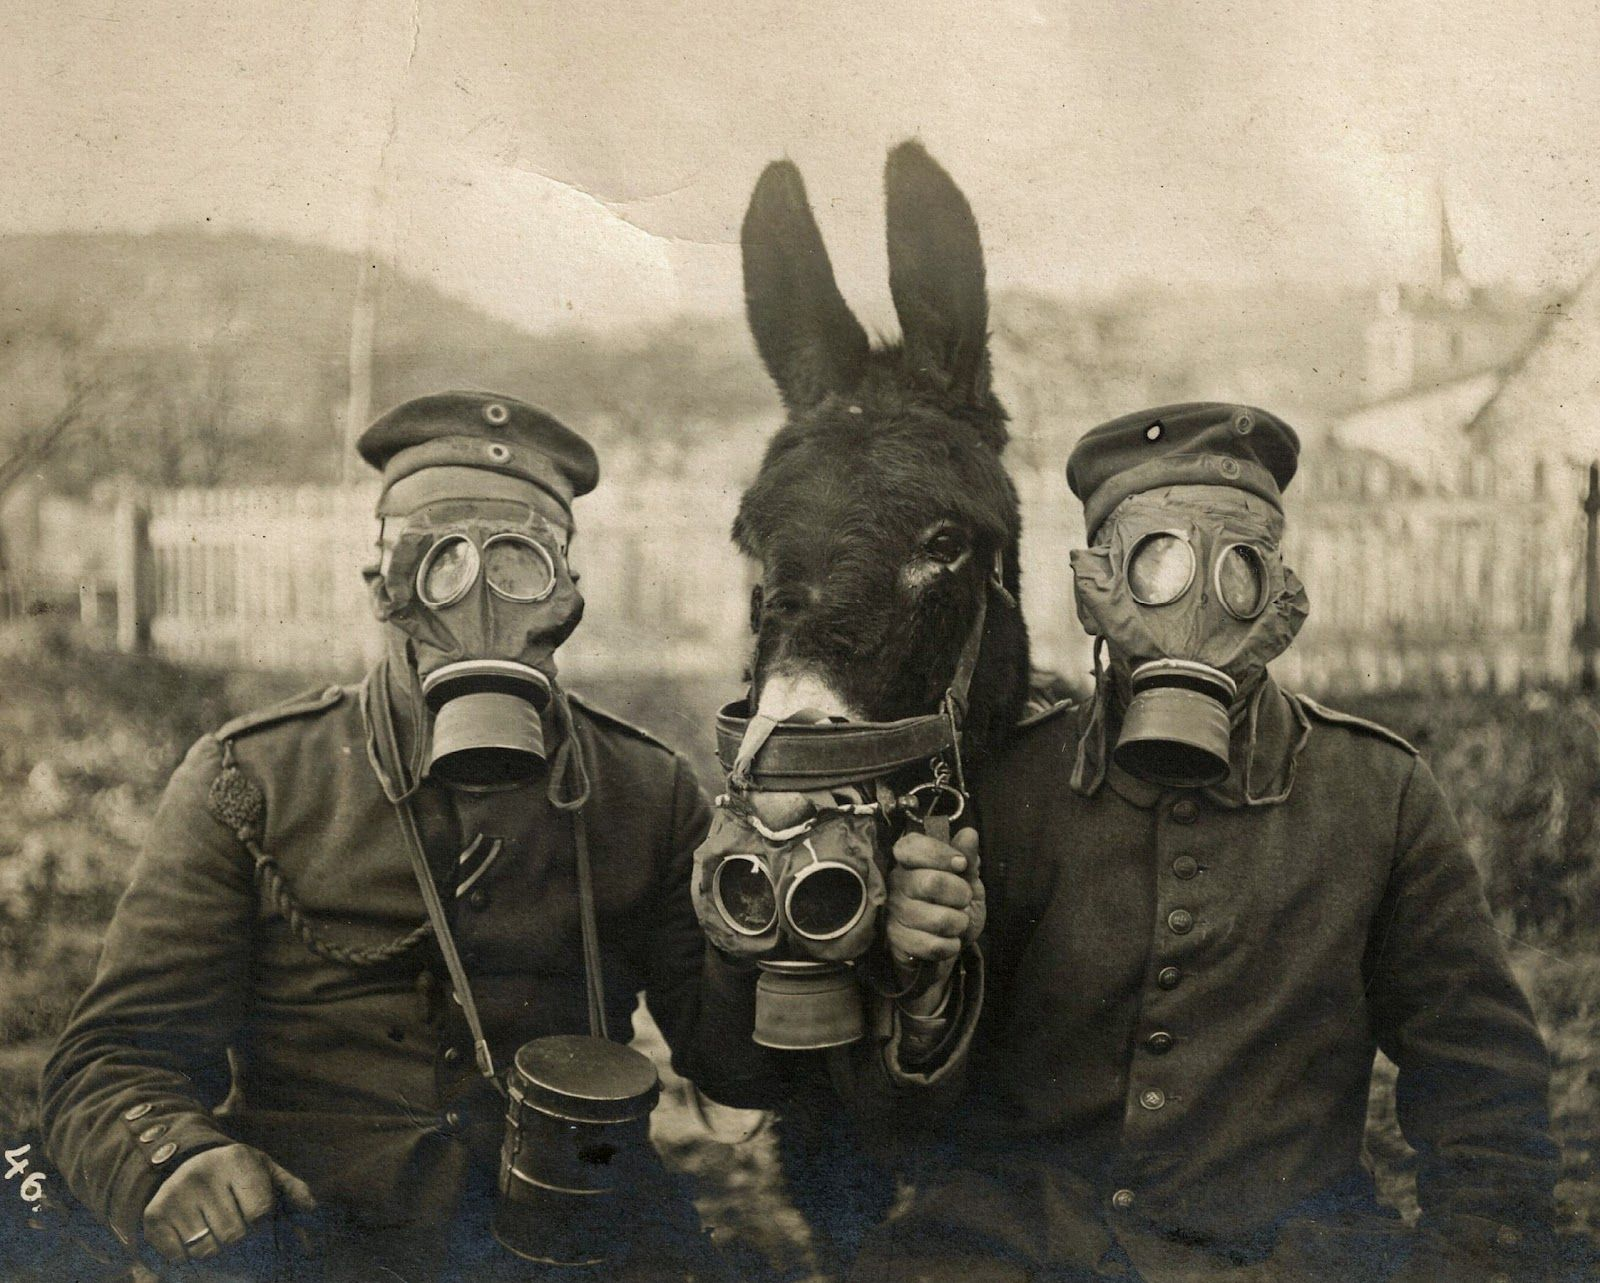 STRANGE ODD SPOOKY FREAKY CREEPY WEIRD Army Soldier Man Gas Mask VINTAGE PHOTO